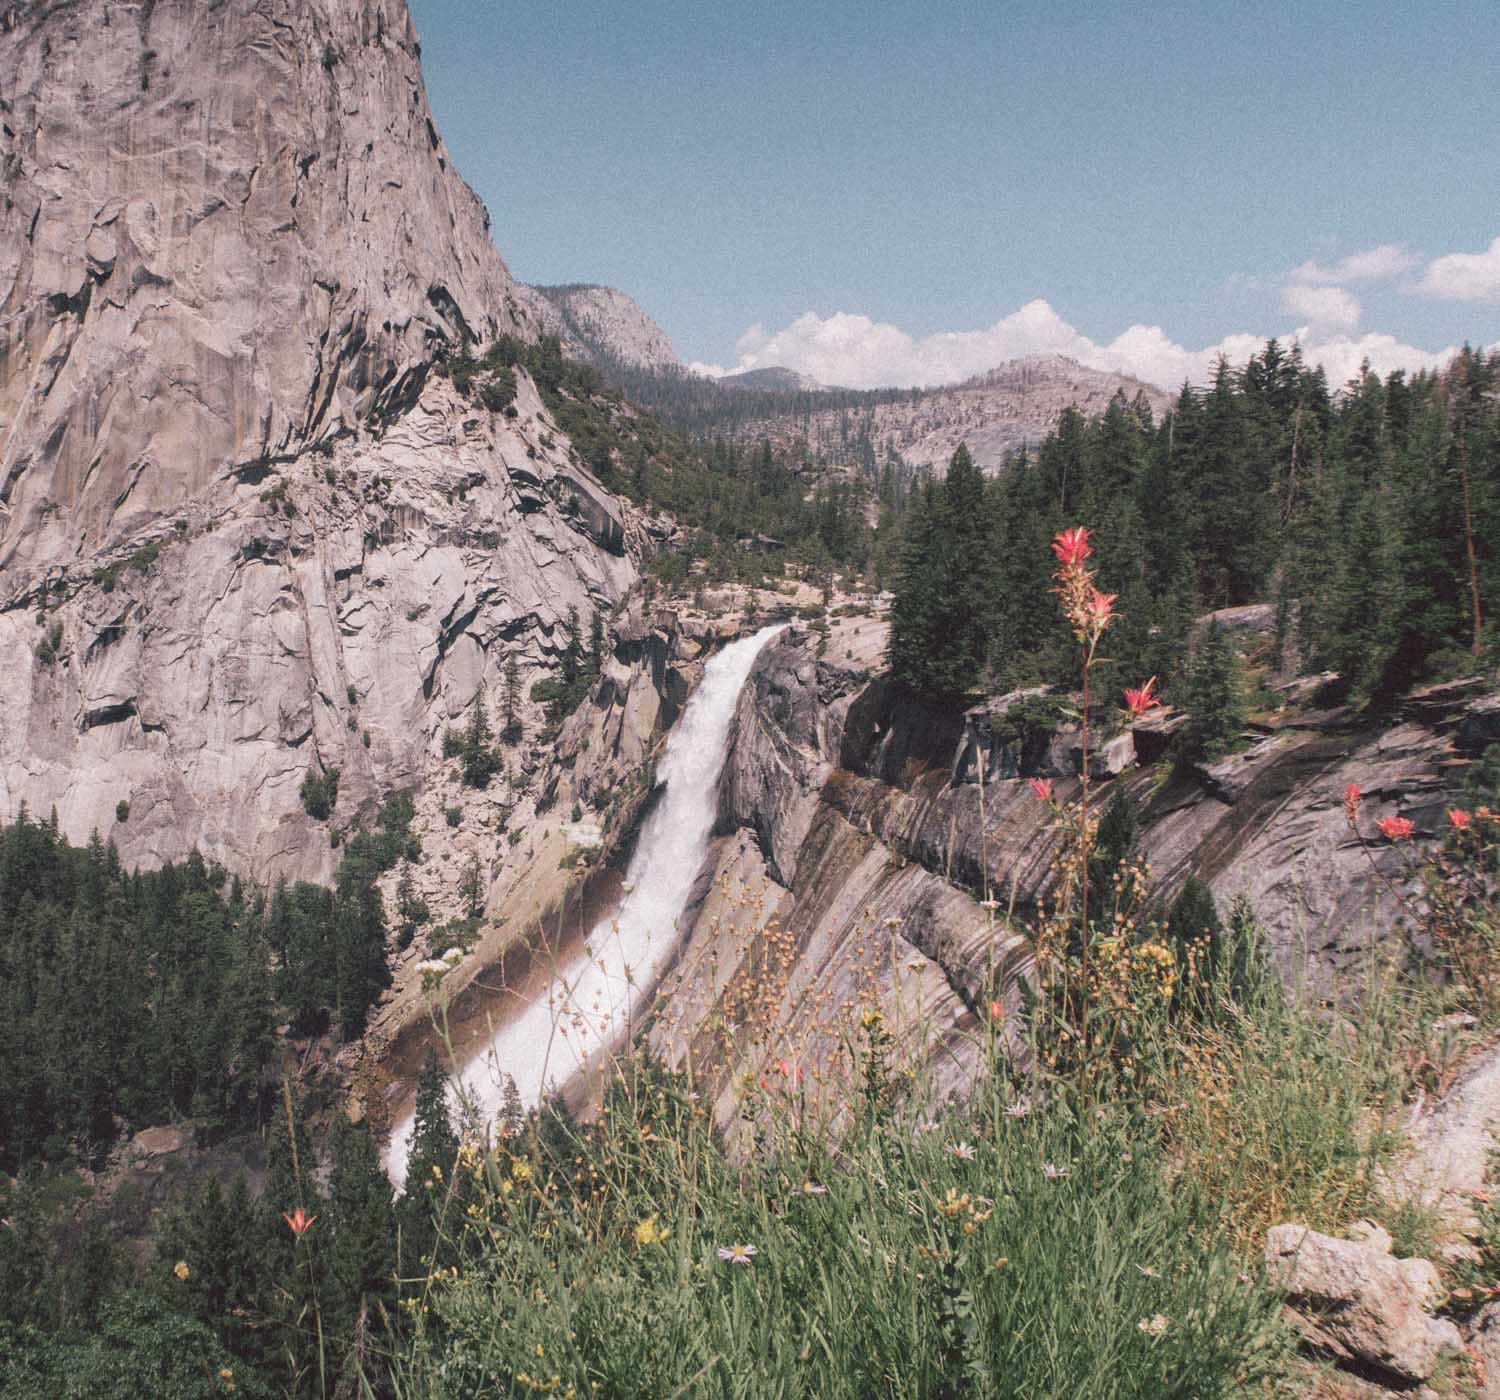 Elizabeth Hugen of Lizzie in Lace shares favorite things to do in Yosemite - including a hike to Nevada Falls!